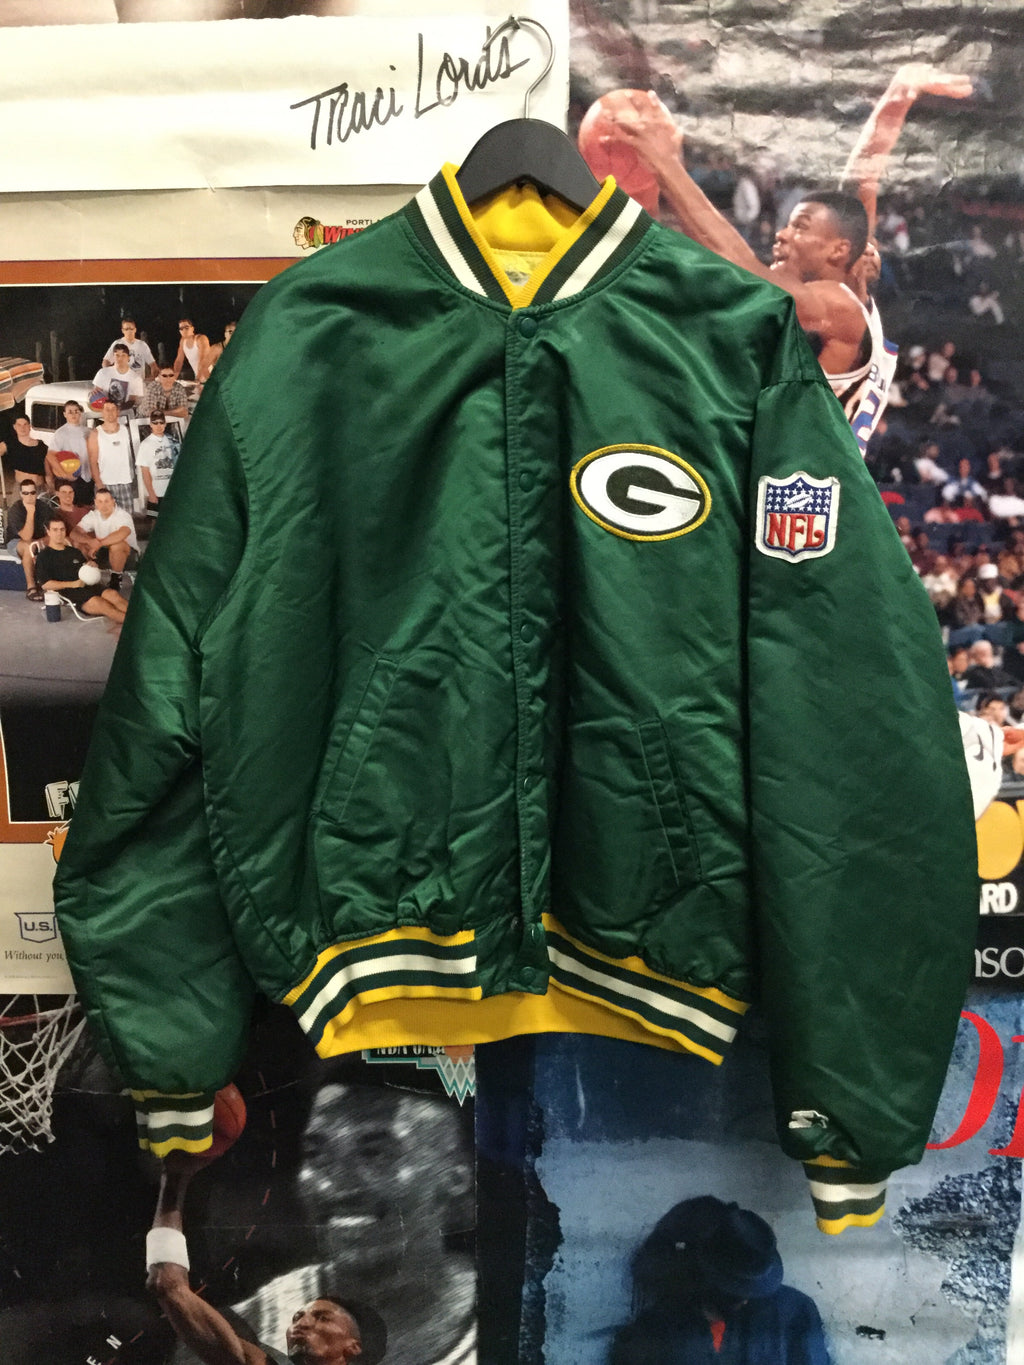 Starter Green Bay Packers Satin Jacket - Decades of dope